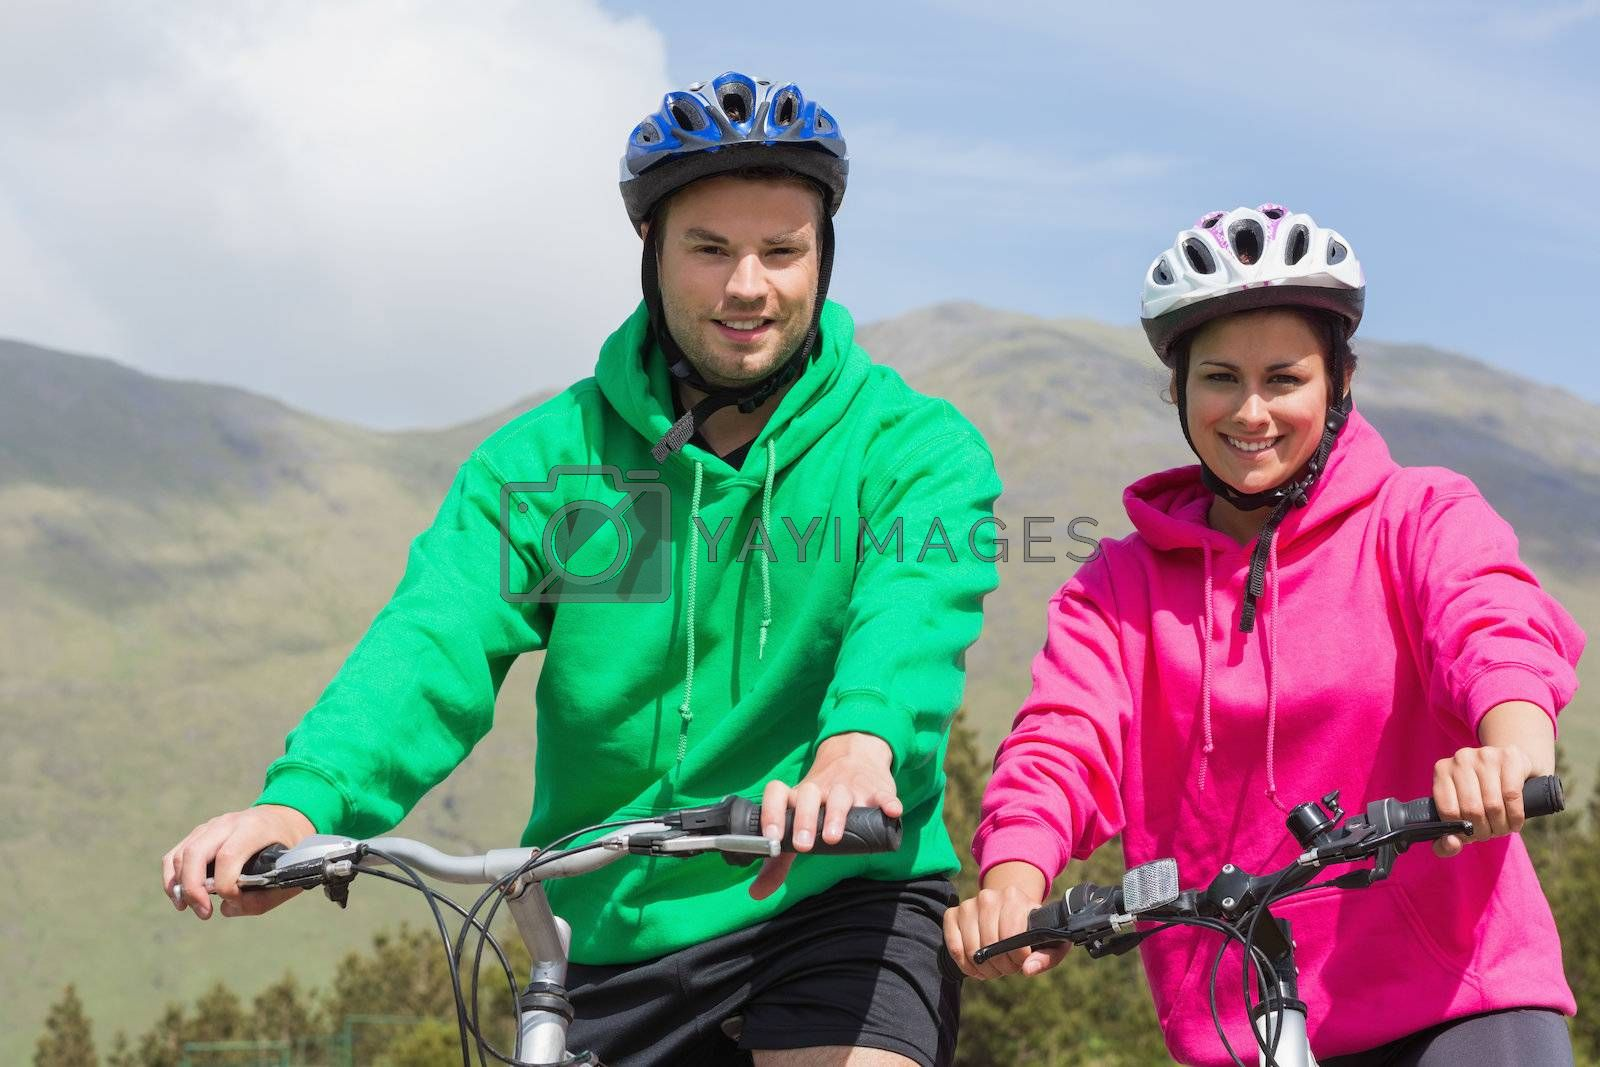 Smiling couple on a bike ride wearing hooded jumpers by Wavebreakmedia